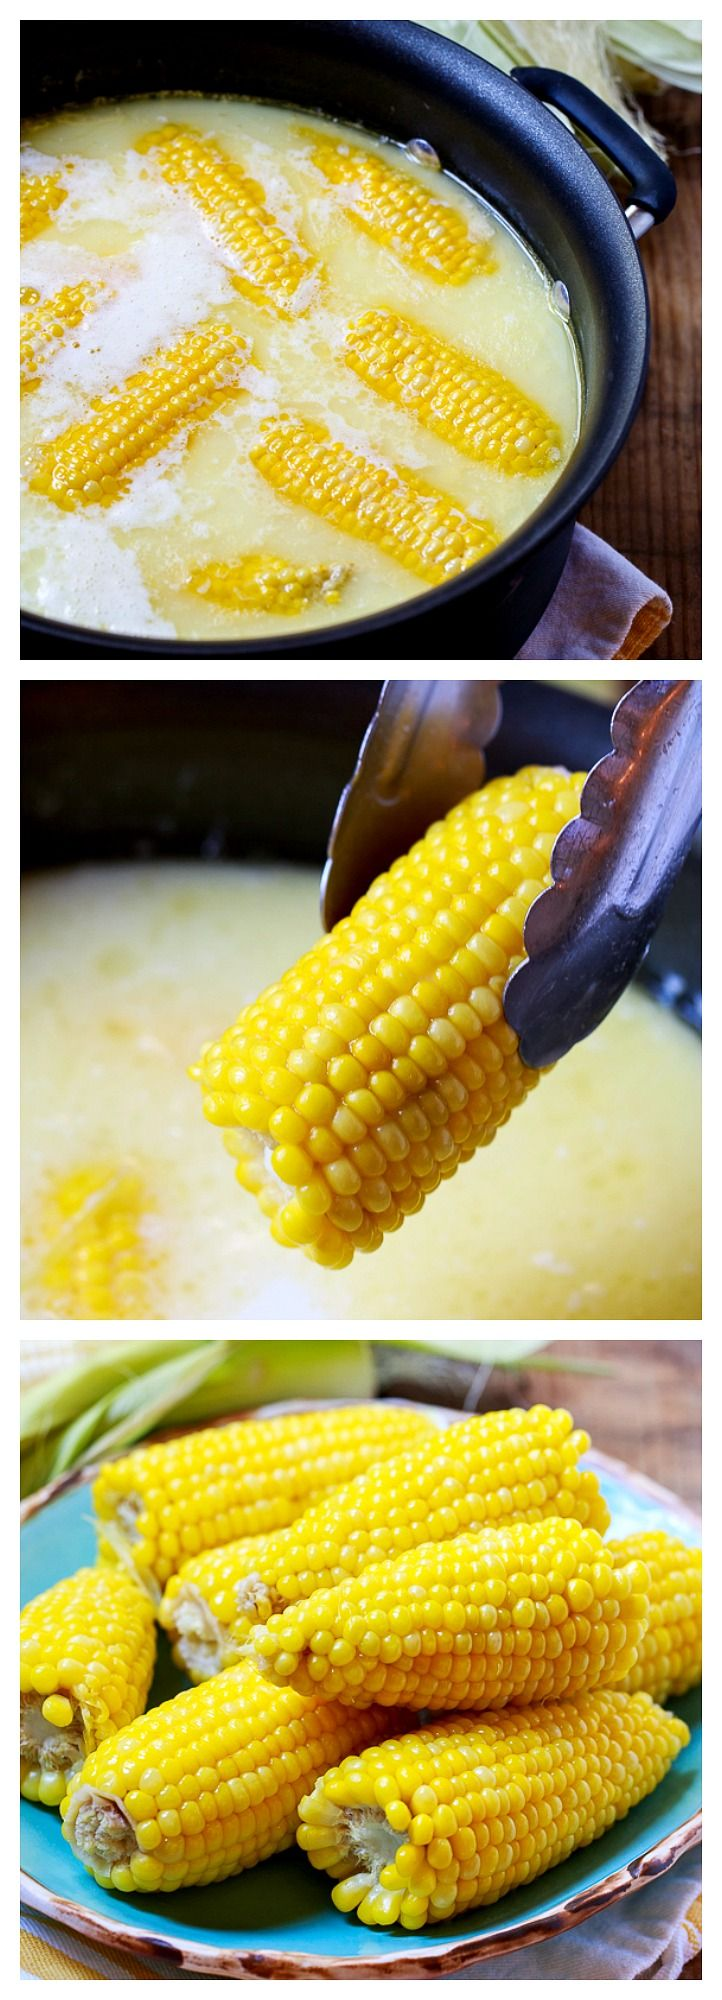 This is the most delicious way to cook corn on the cob - in boiling water with a cup of milk and a stick of butter. So good!